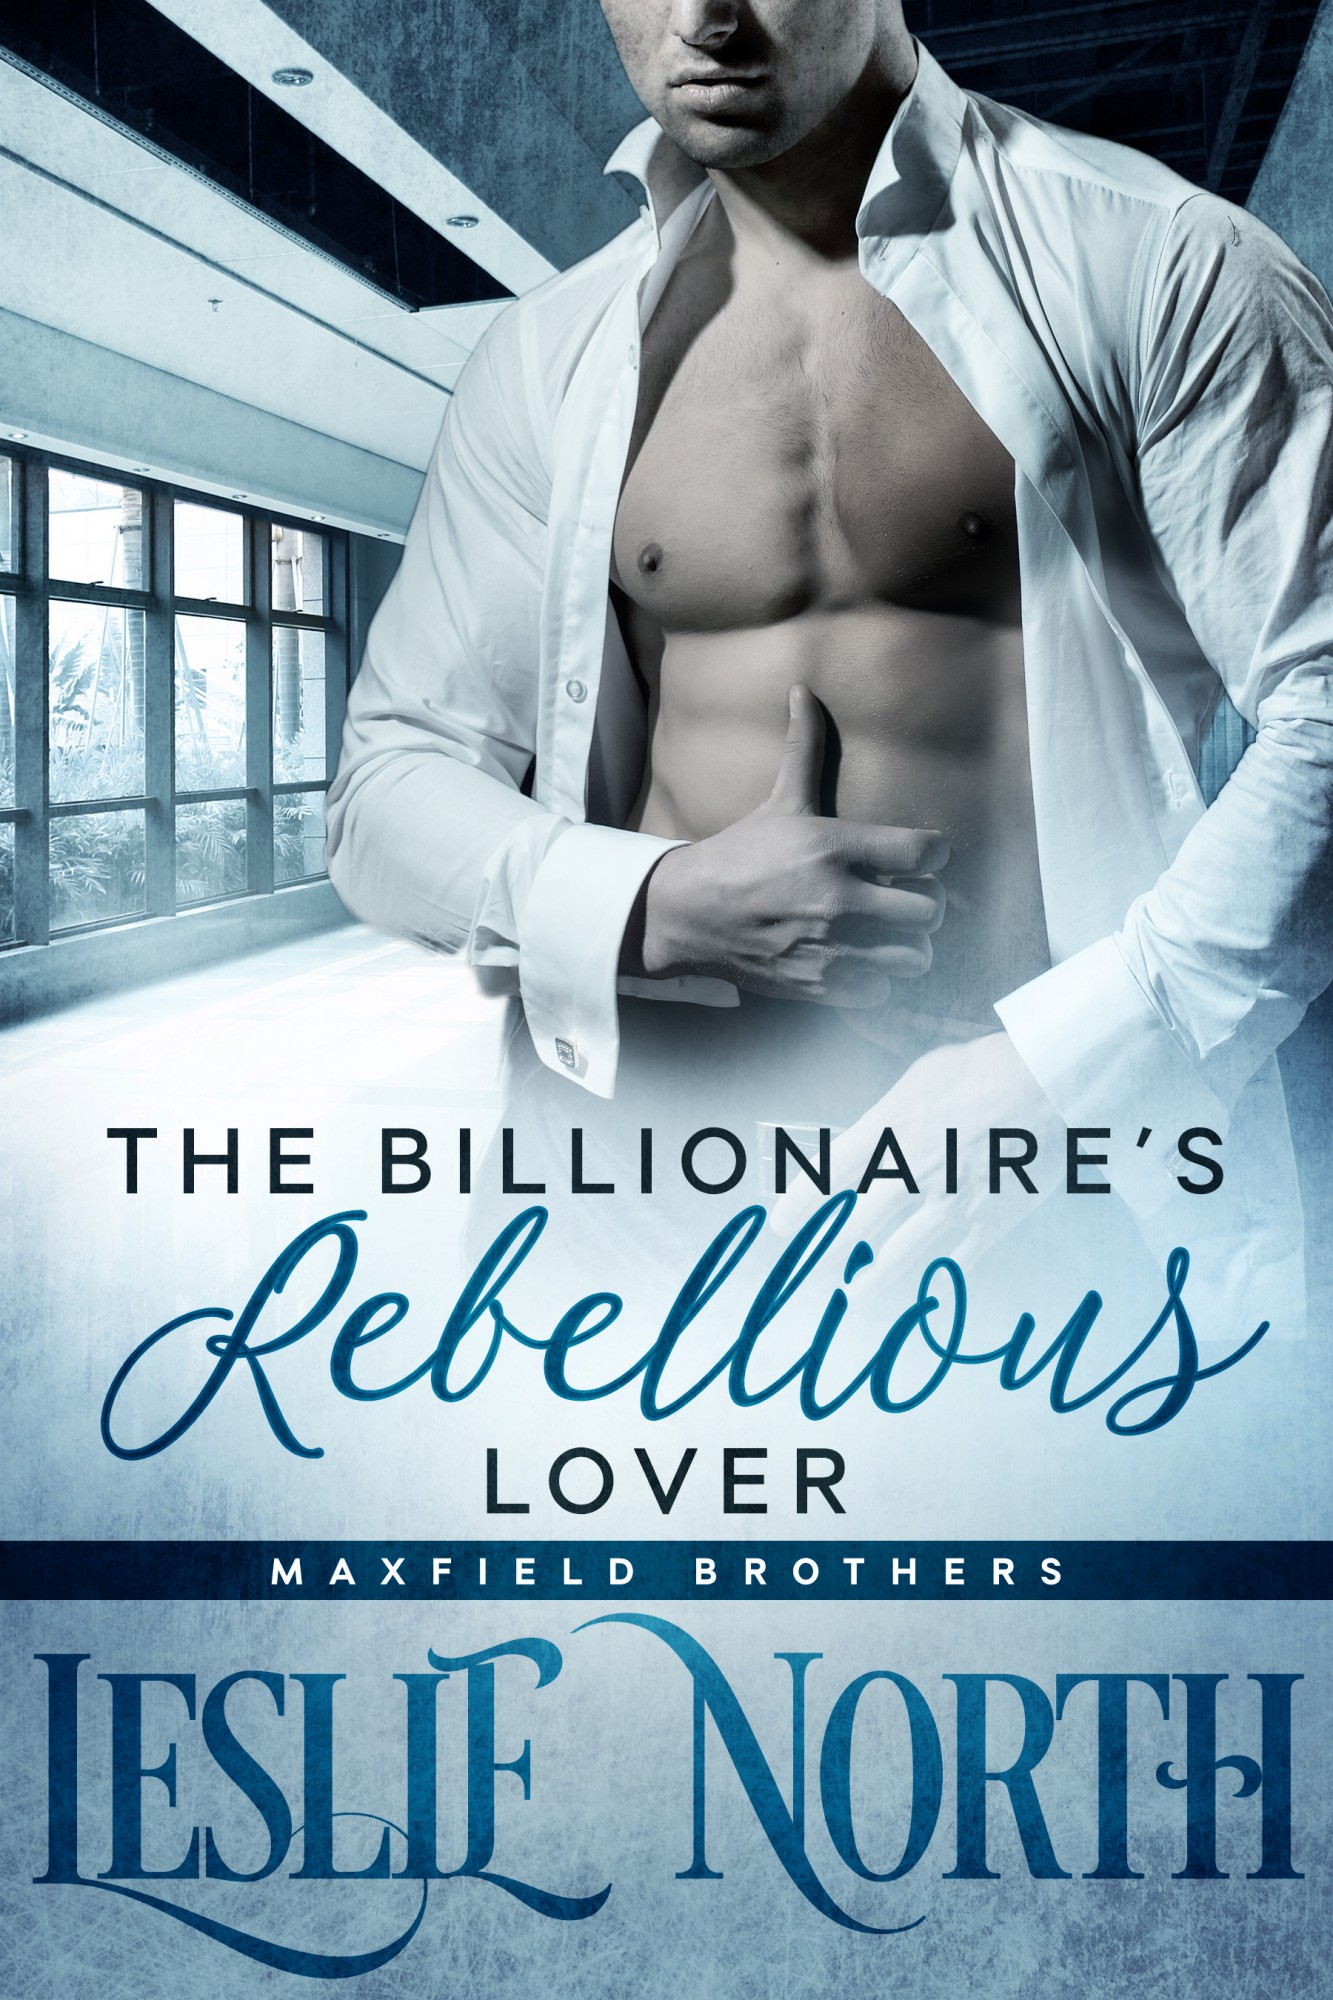 The Billionaire's Rebellious Lover (Maxfield Brothers Series #2)